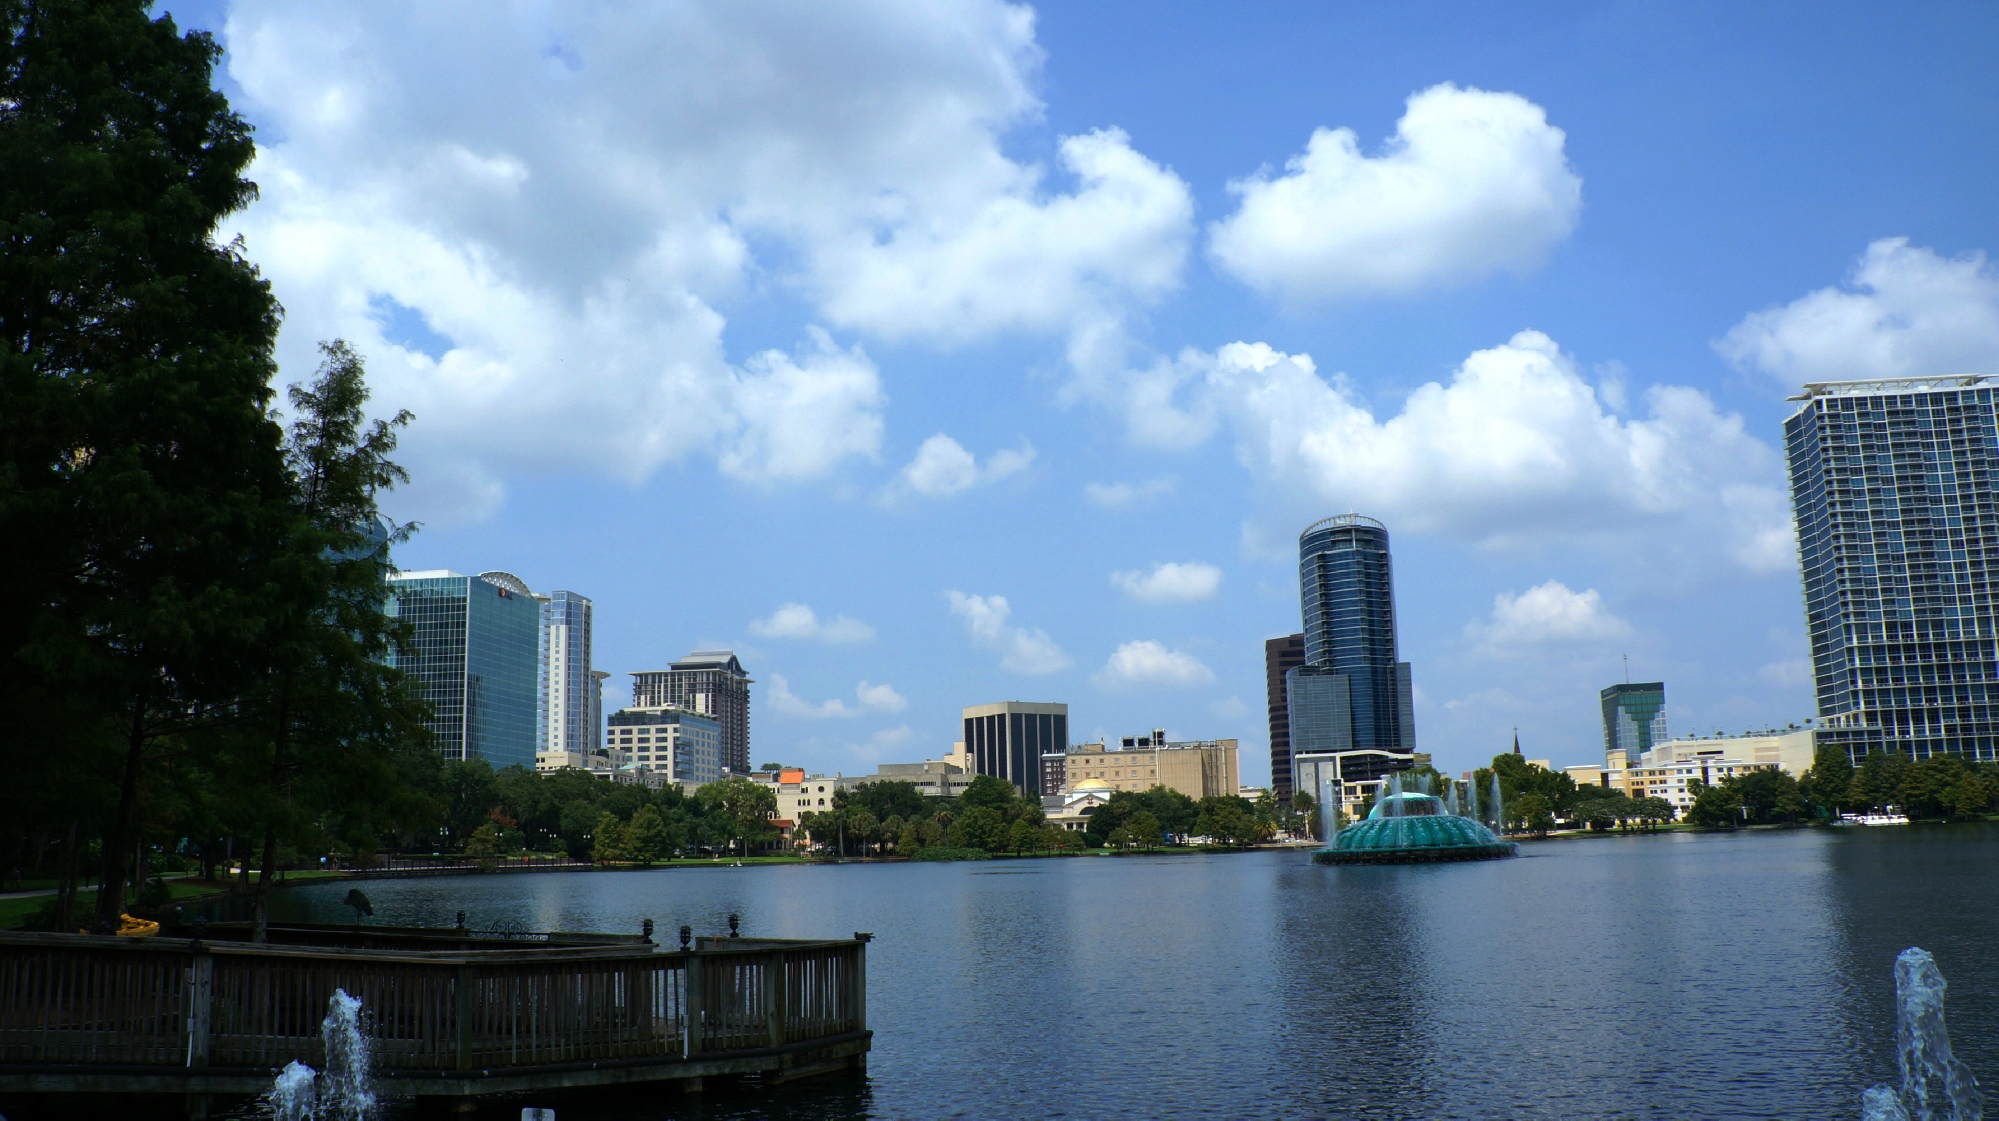 According to the TripIndex, Orlando, FL offers the second most affordable vacation rental getaways this summer. (A TripAdvisor traveler photo)